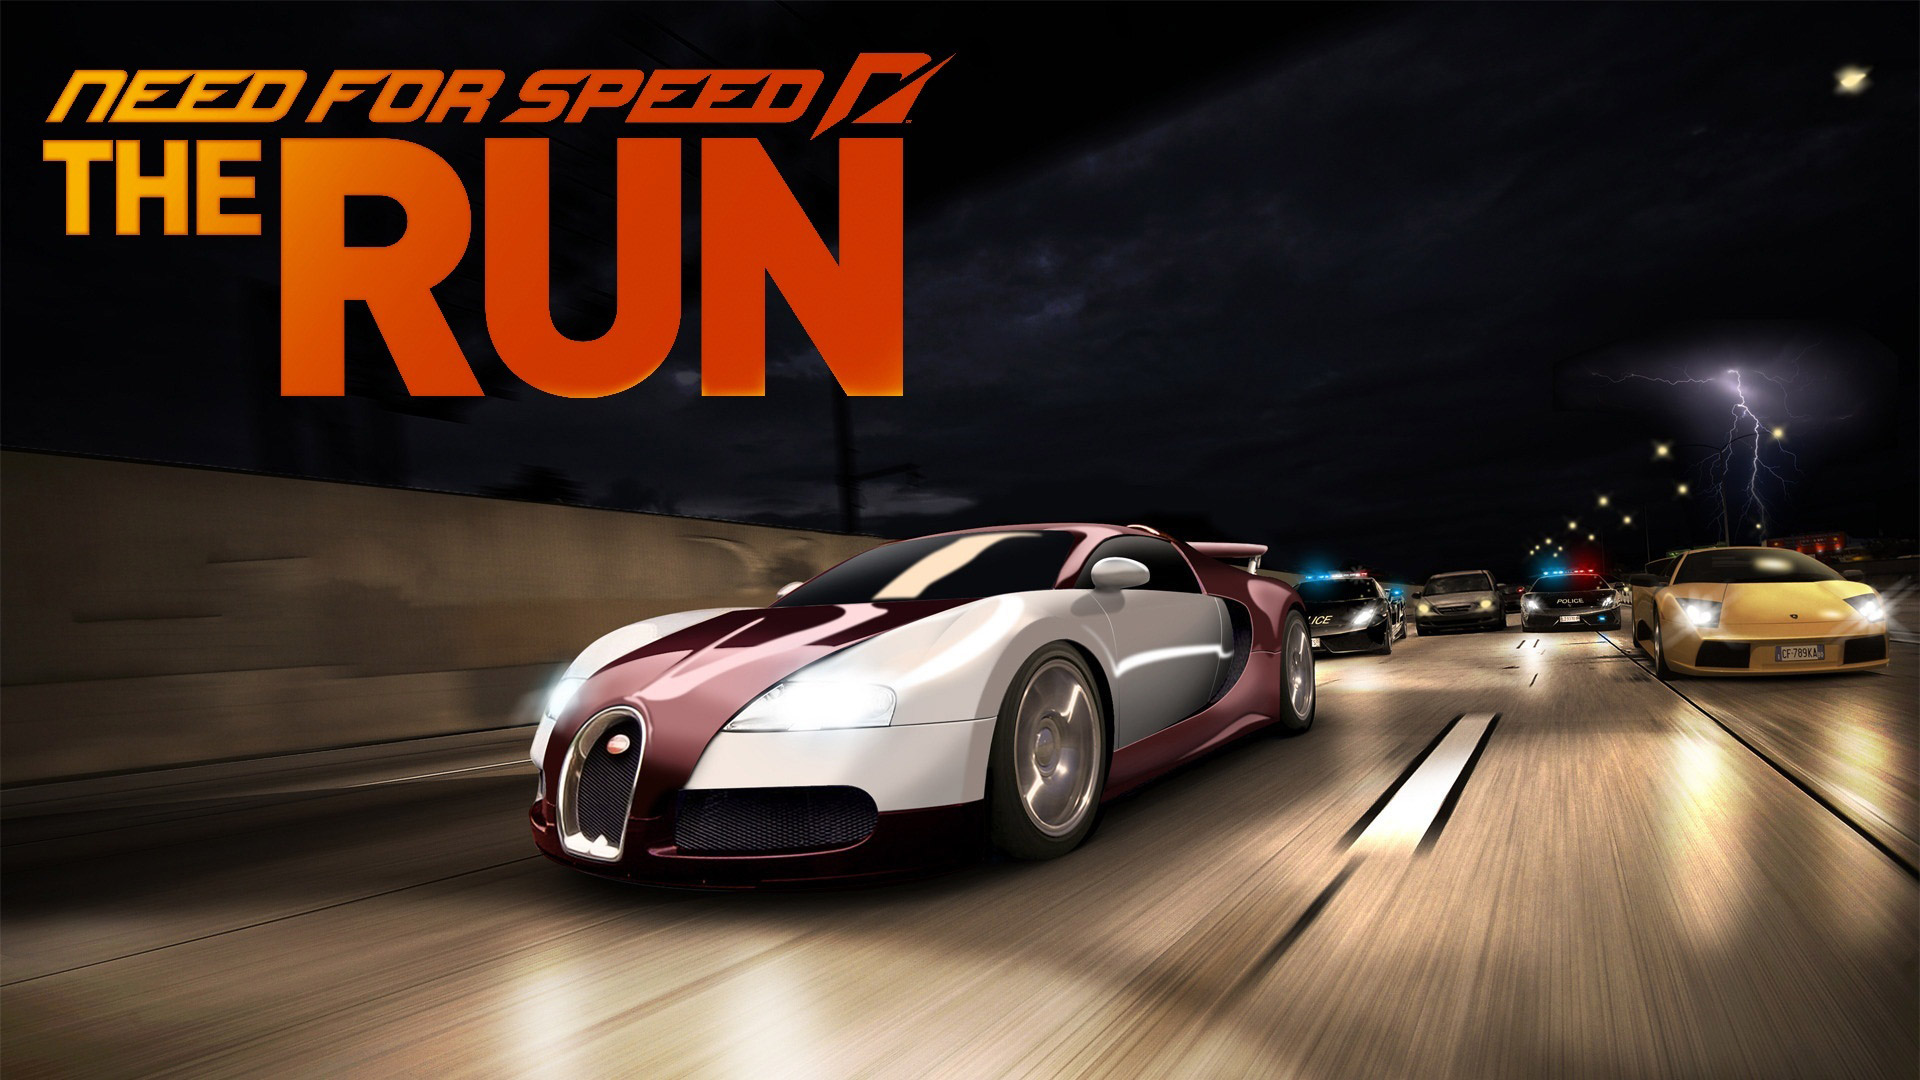 Free Need for Speed: The Run Wallpaper in 1920x1080